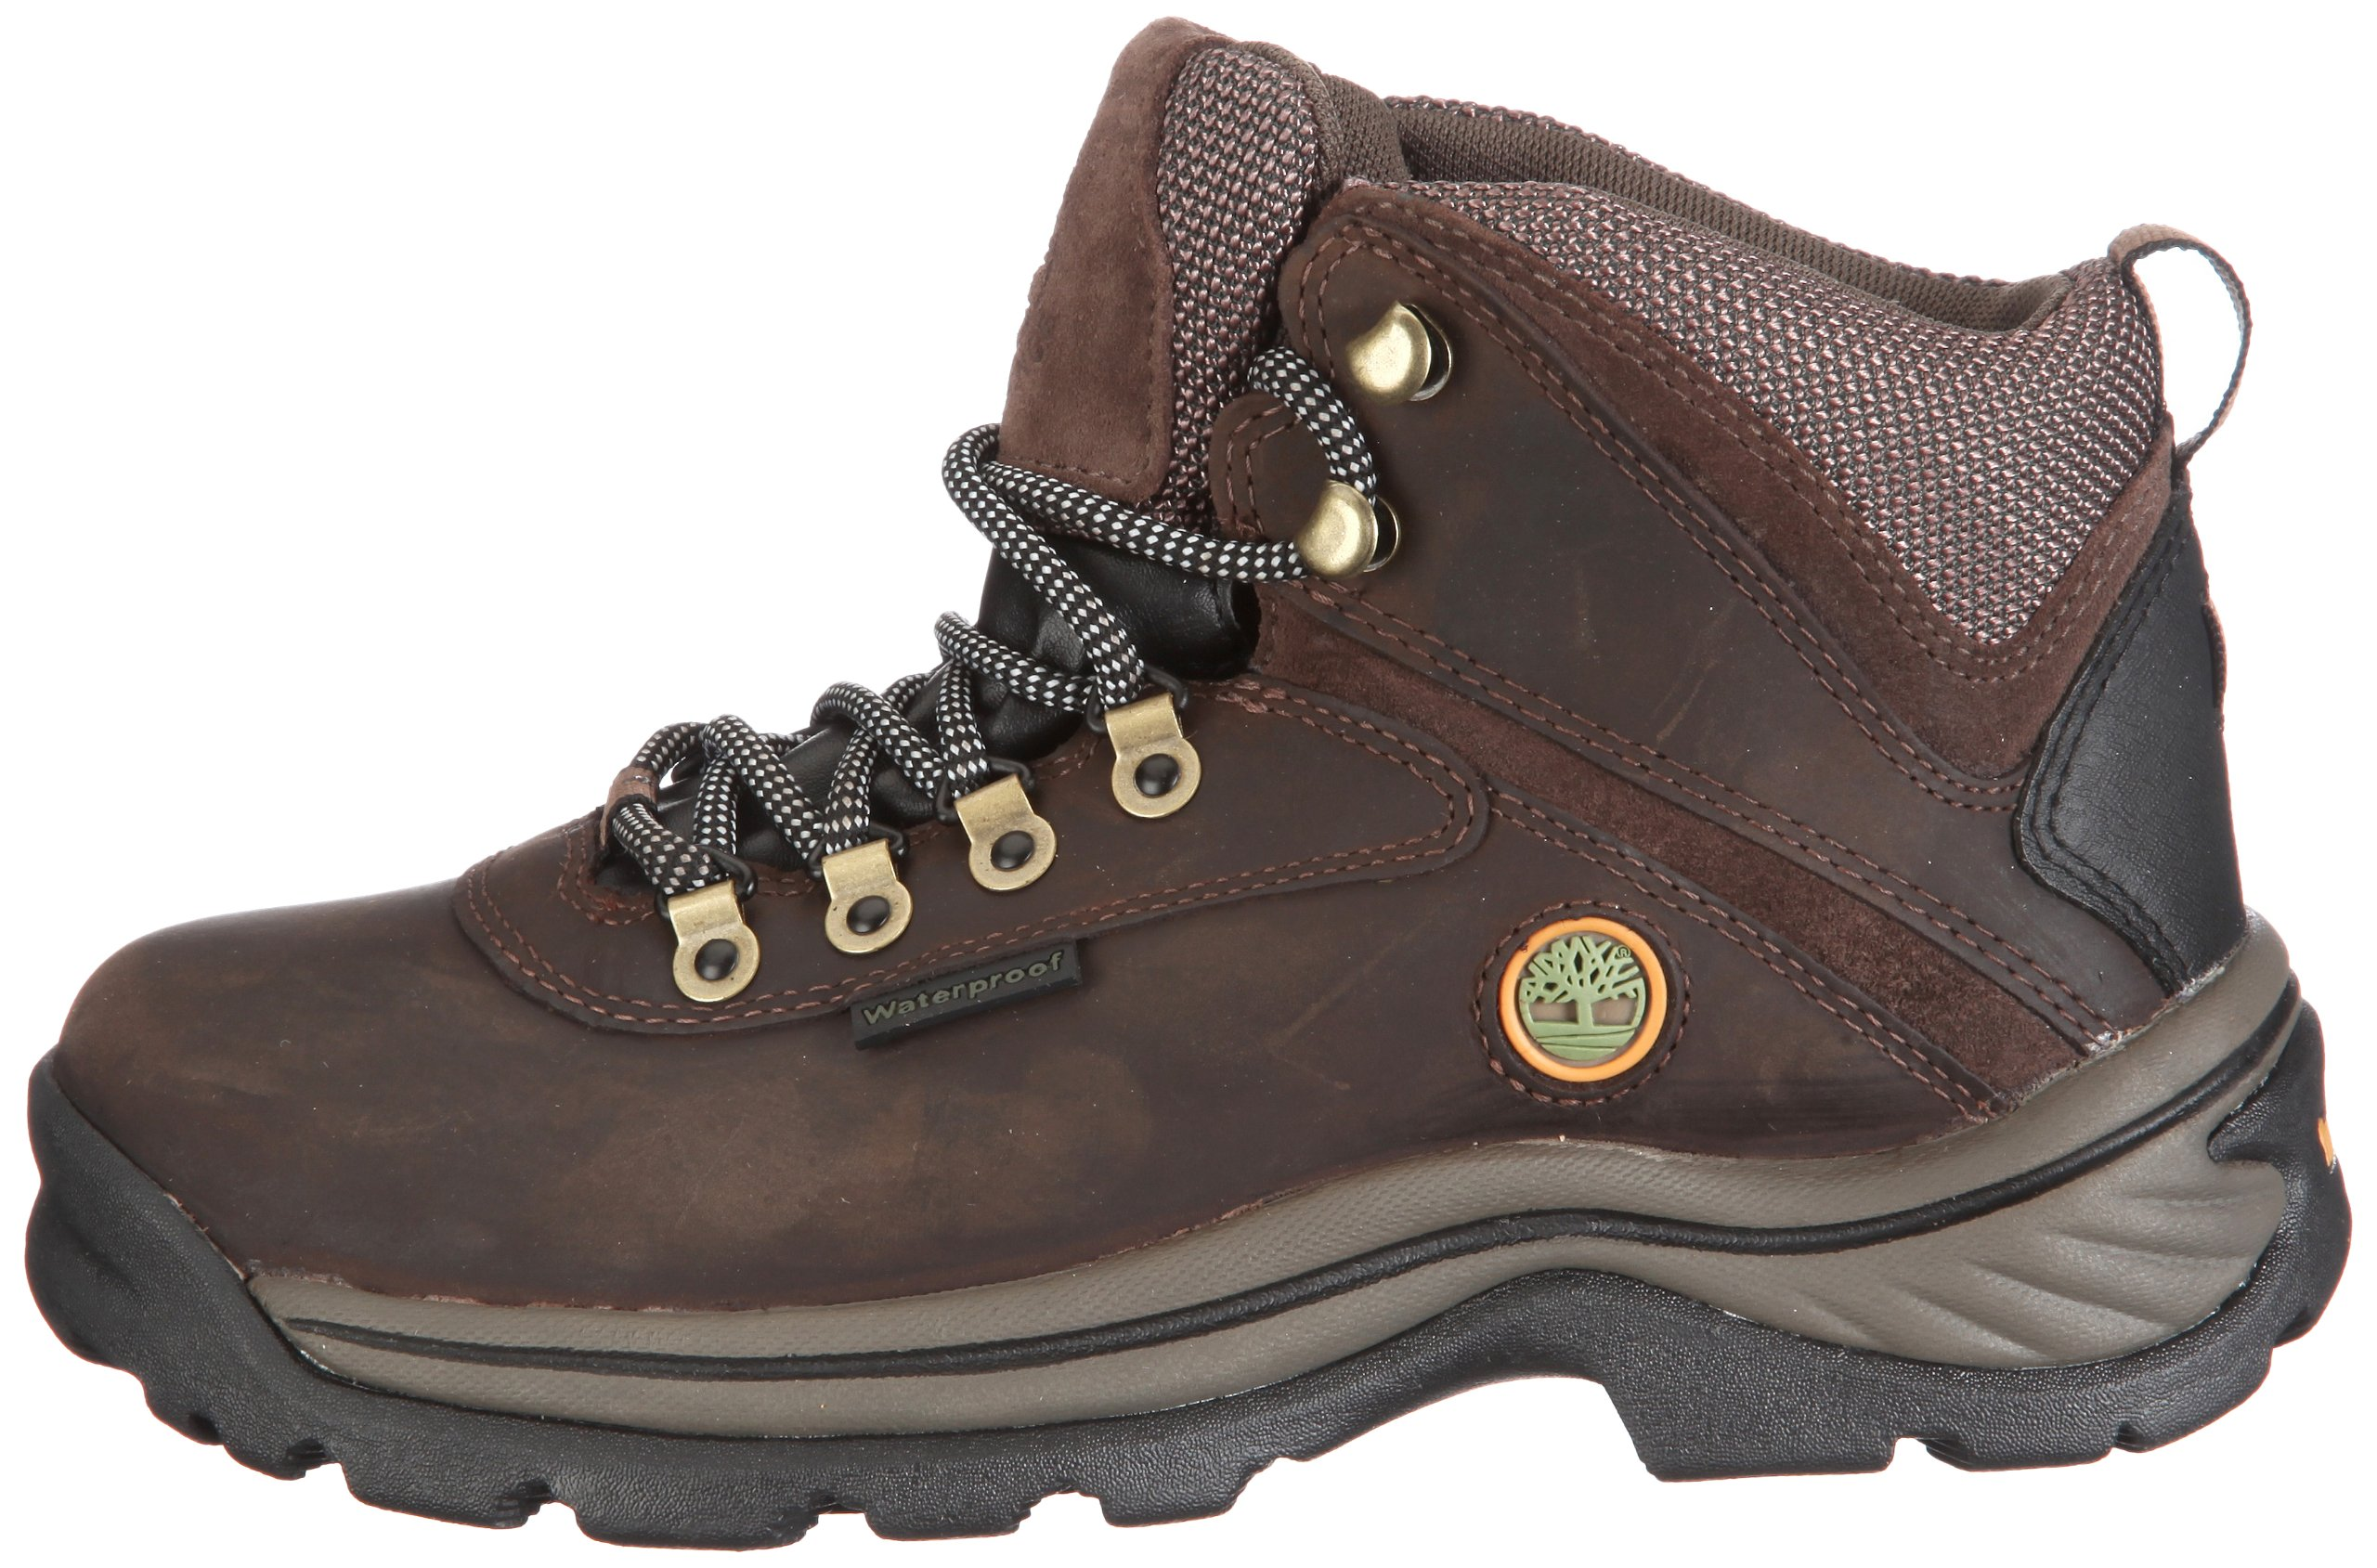 Timberland Women's White Ledge Mid Ankle Boot,Brown,9.5 W US by Timberland (Image #5)